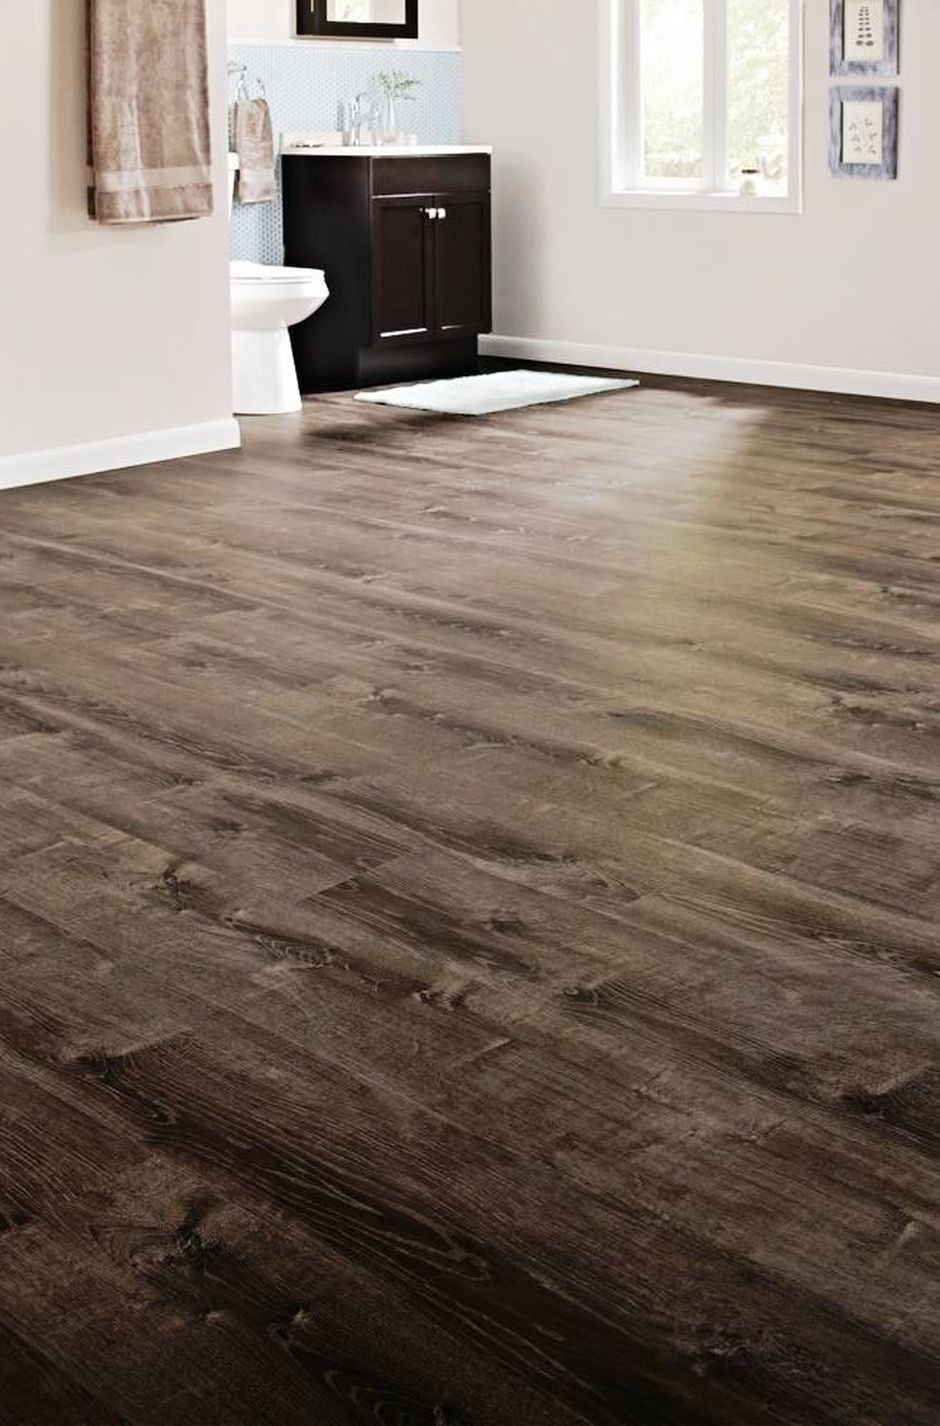 Hardwood Looking Vinyl Flooring Of 50 Luxury Vinyl Plank Flooring to Make Your House Look Fabulous with 50 Luxury Vinyl Plank Flooring to Make Your House Look Fabulous